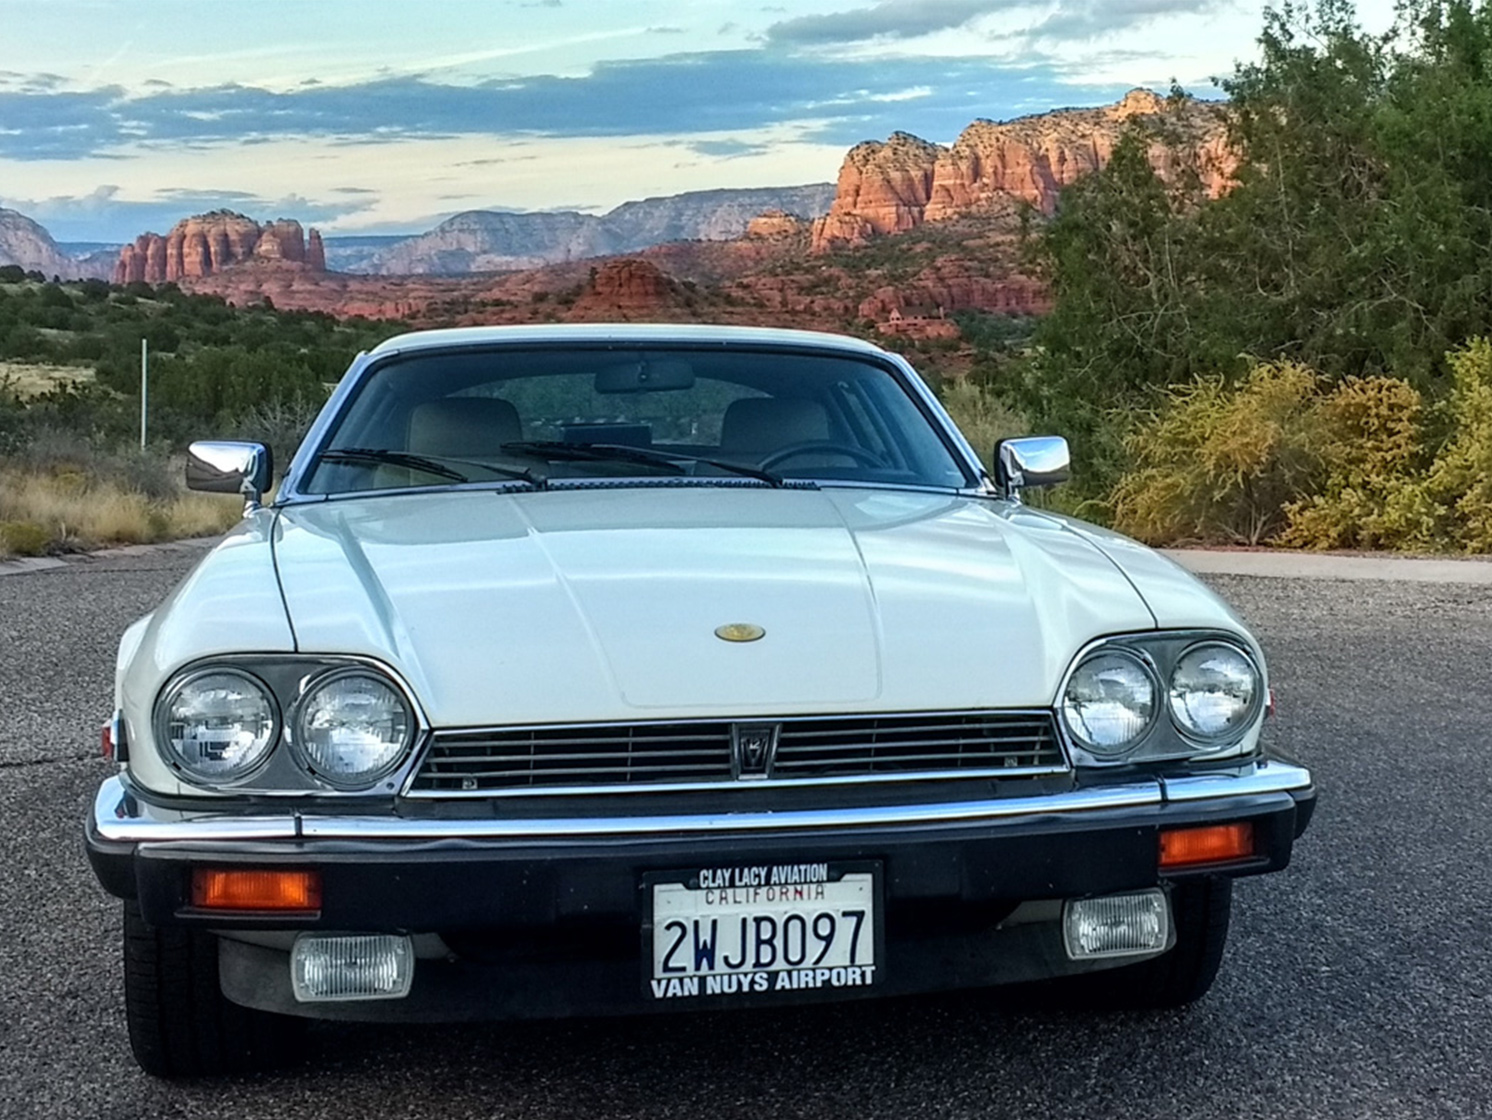 Why Aren't The Jaguar Xj6 And Xj12 Worth More Hagerty Articlesrhhagerty: Jaguar Xjs Wiring Diagram Conversion At Gmaili.net